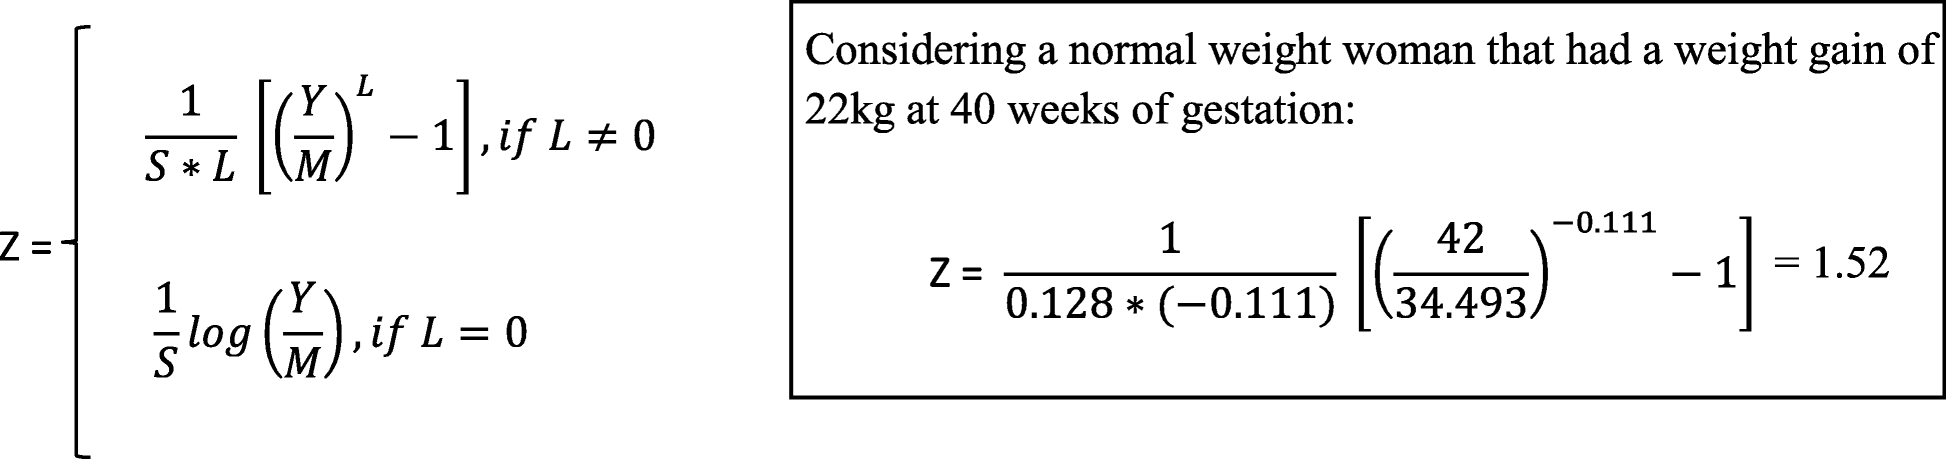 46fc1e2a588 Gestational weight gain charts for different body mass index groups ...